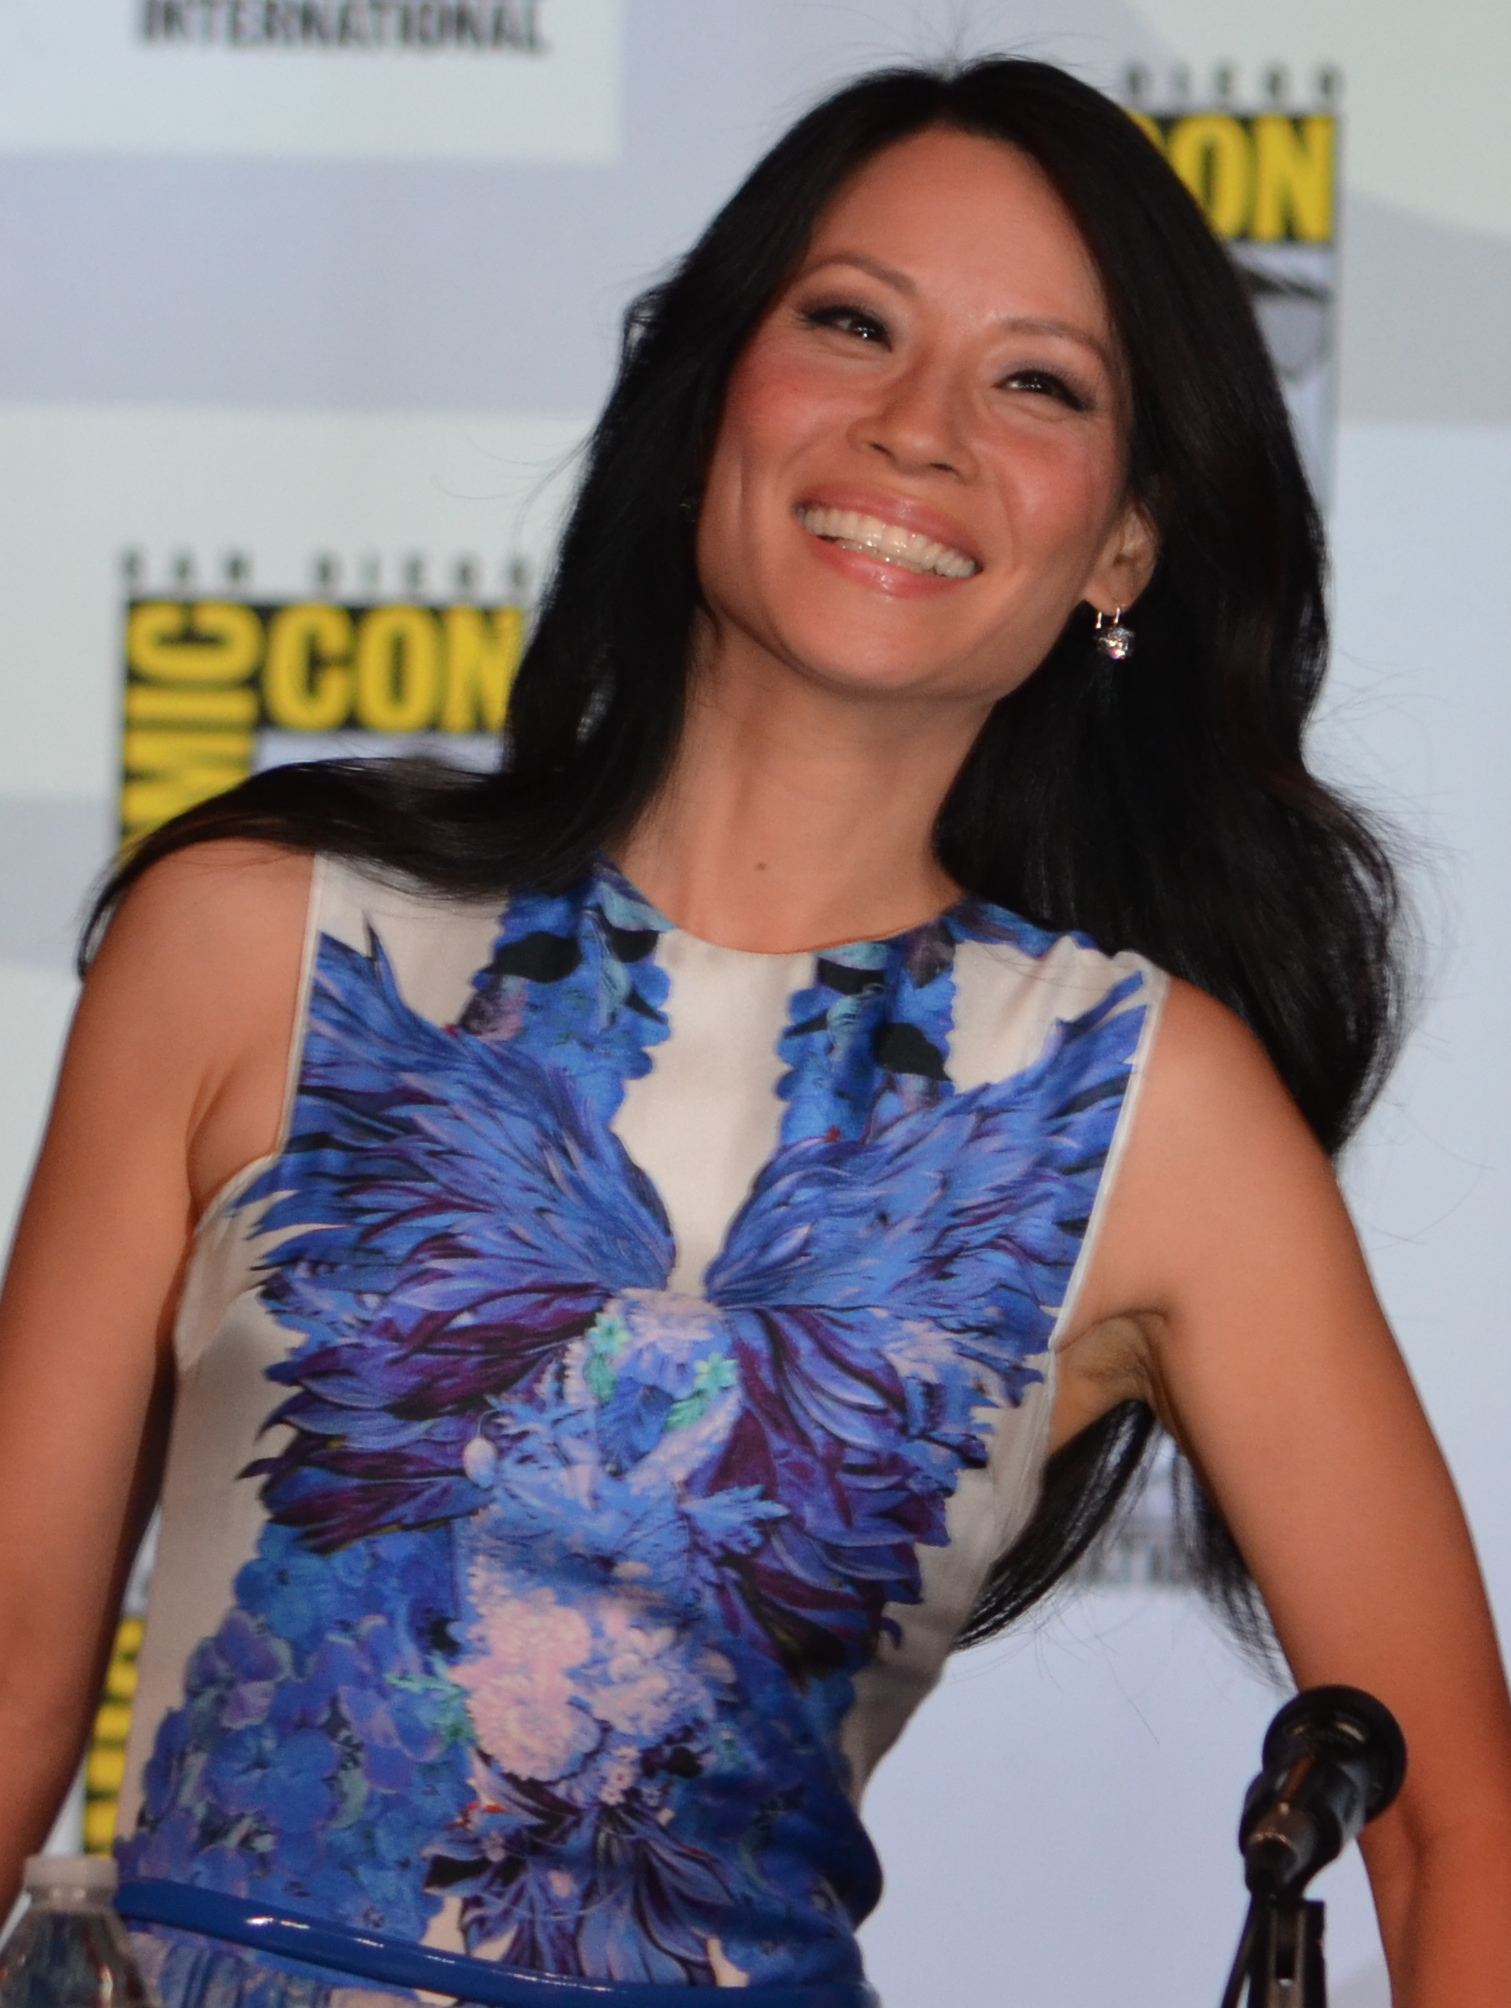 Liu at the 2012 [[San Diego Comic-Con]]